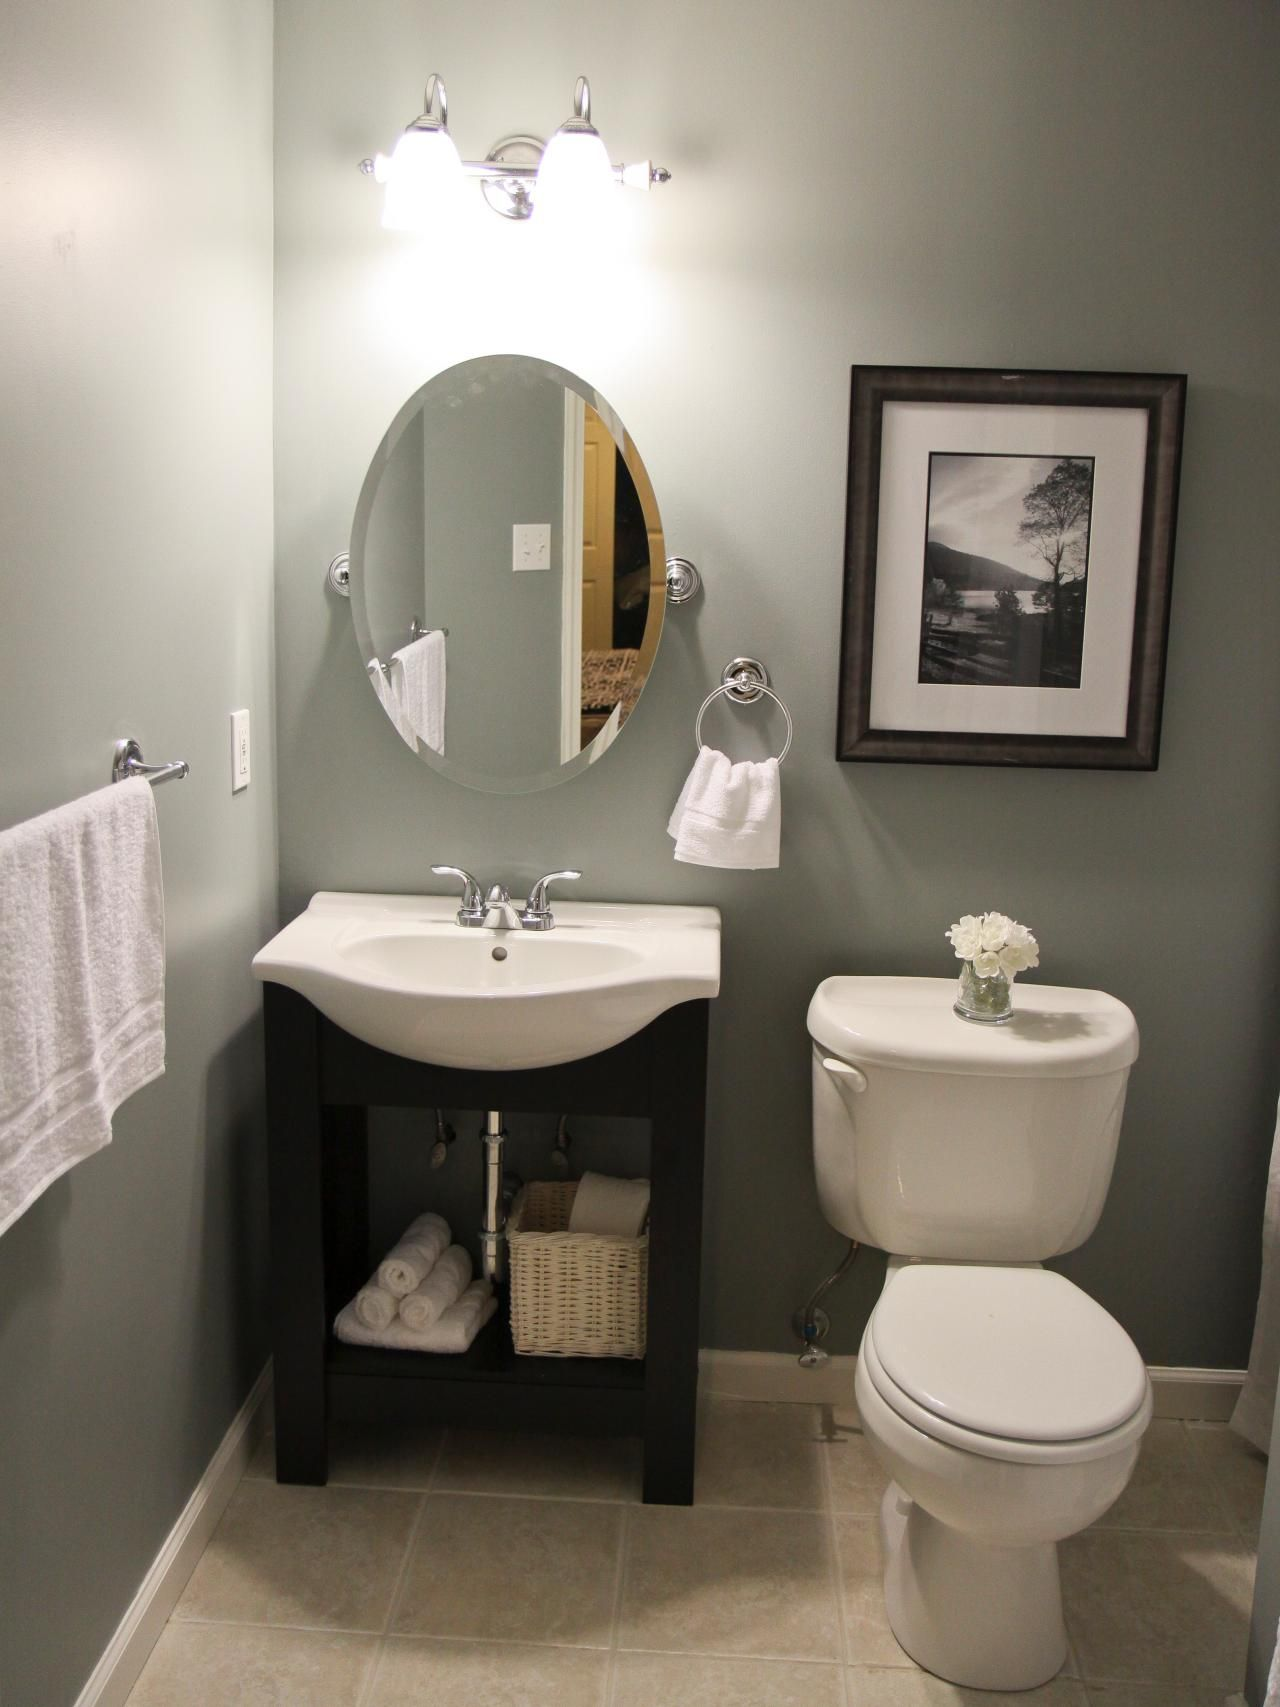 Budgeting For A Bathroom Remodel Small Bathroom Bathroom - Small bathroom upgrades for small bathroom ideas